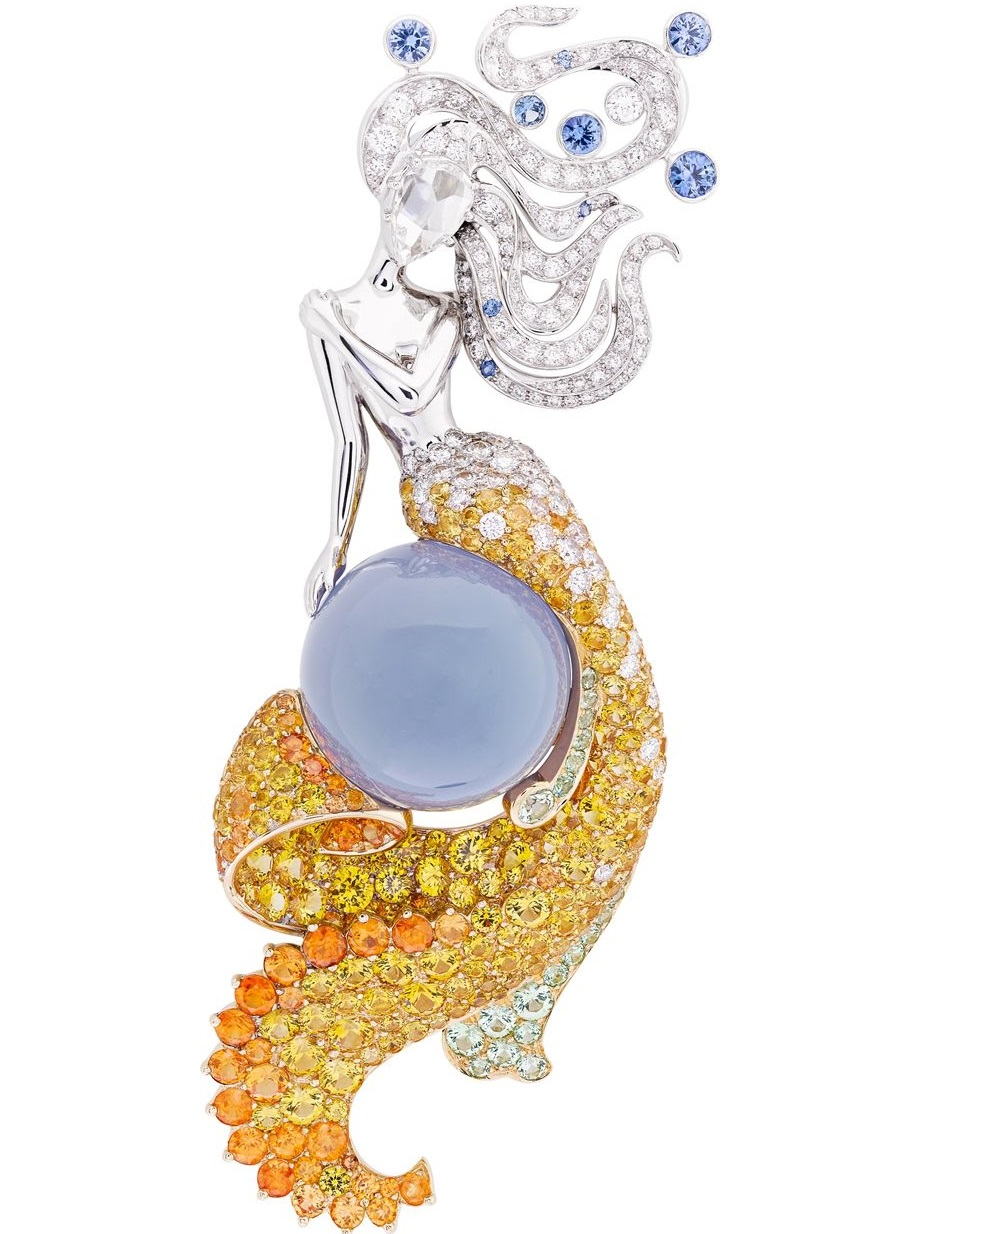 Van Cleef & Arpels ~ The 'Seven Seas' Collection 'Fairy of Sea' clip. Inspired by the Indian and Atlantic Oceans, the clip is set with diamonds, blue and yellow sapphires, spessartite and grossular garnets and a 23.64-carat cabochon chalcedony in white and yellow gold. 2015.